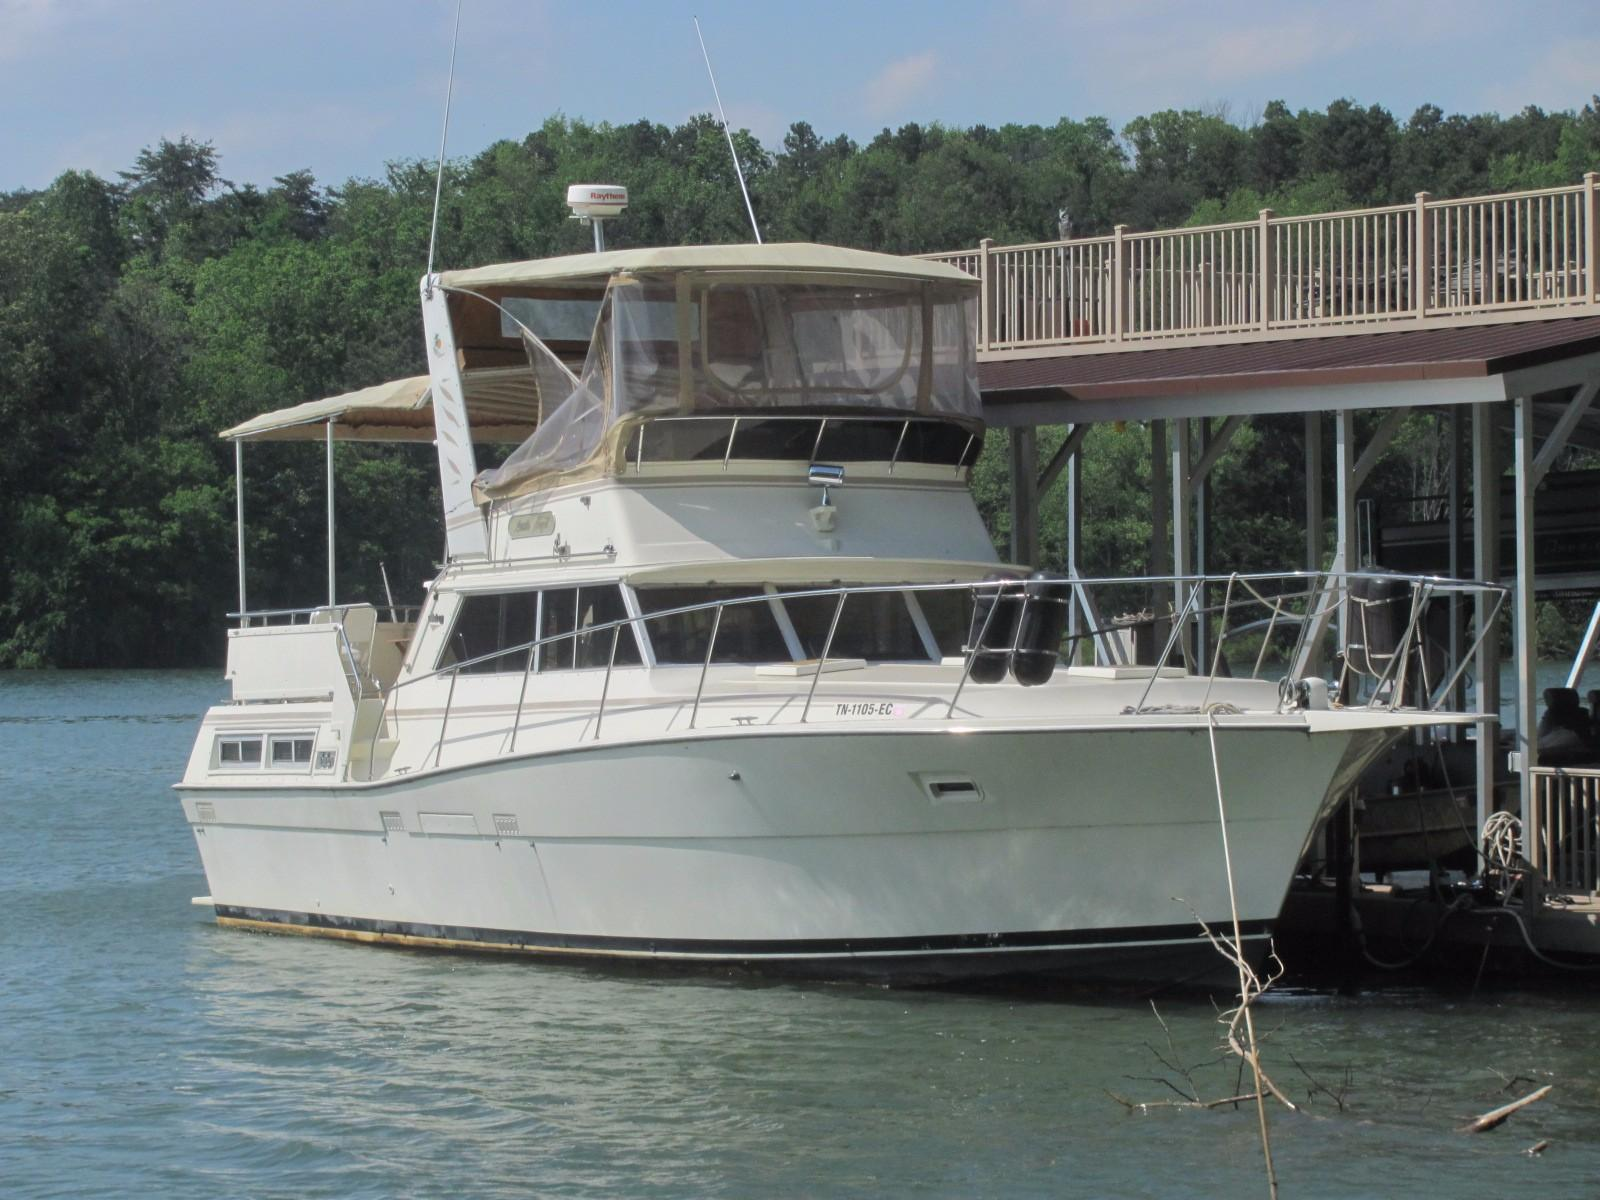 1980 Viking 43 Double Cabin Power Boat For Sale Www